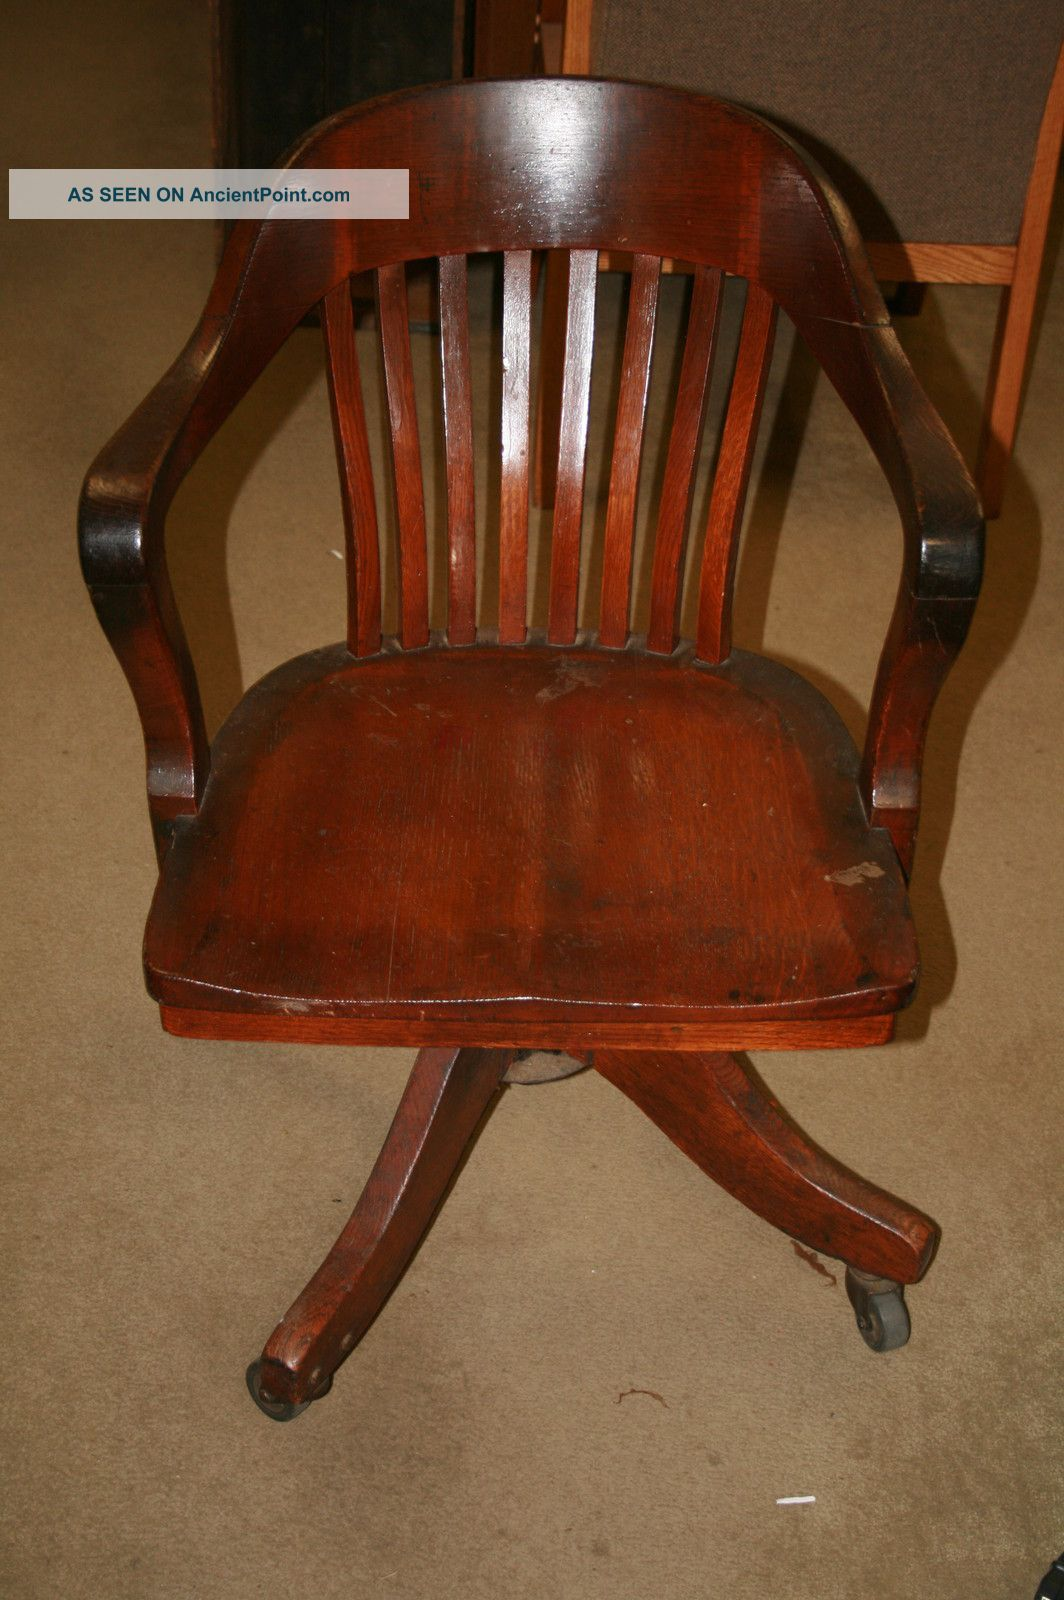 Vintage Antique Oak Desk Chair Lawyer Office Sheybogan Crocker Co.  1900-1950 photo - Vintage Antique Oak Desk Chair Lawyer Office Sheybogan Crocker Co